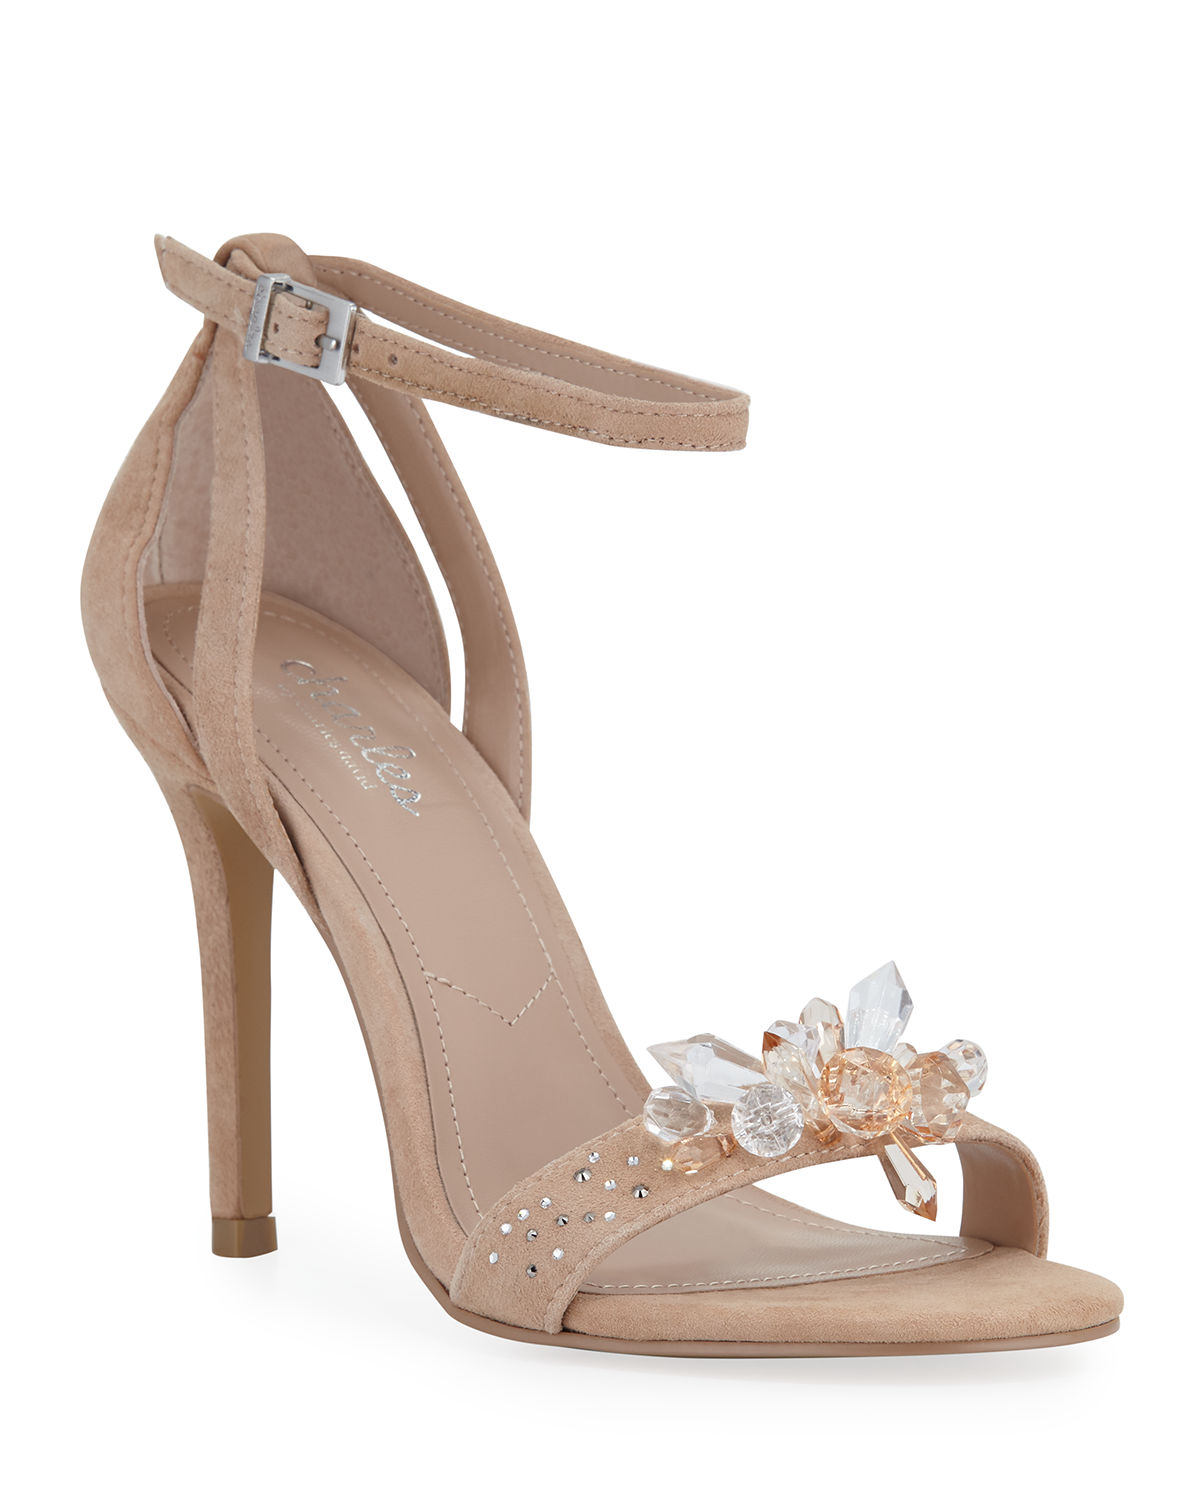 c156f9e3e89a Charles By Charles David Rainey Jeweled Suede Ankle-Strap Sandals In Nude